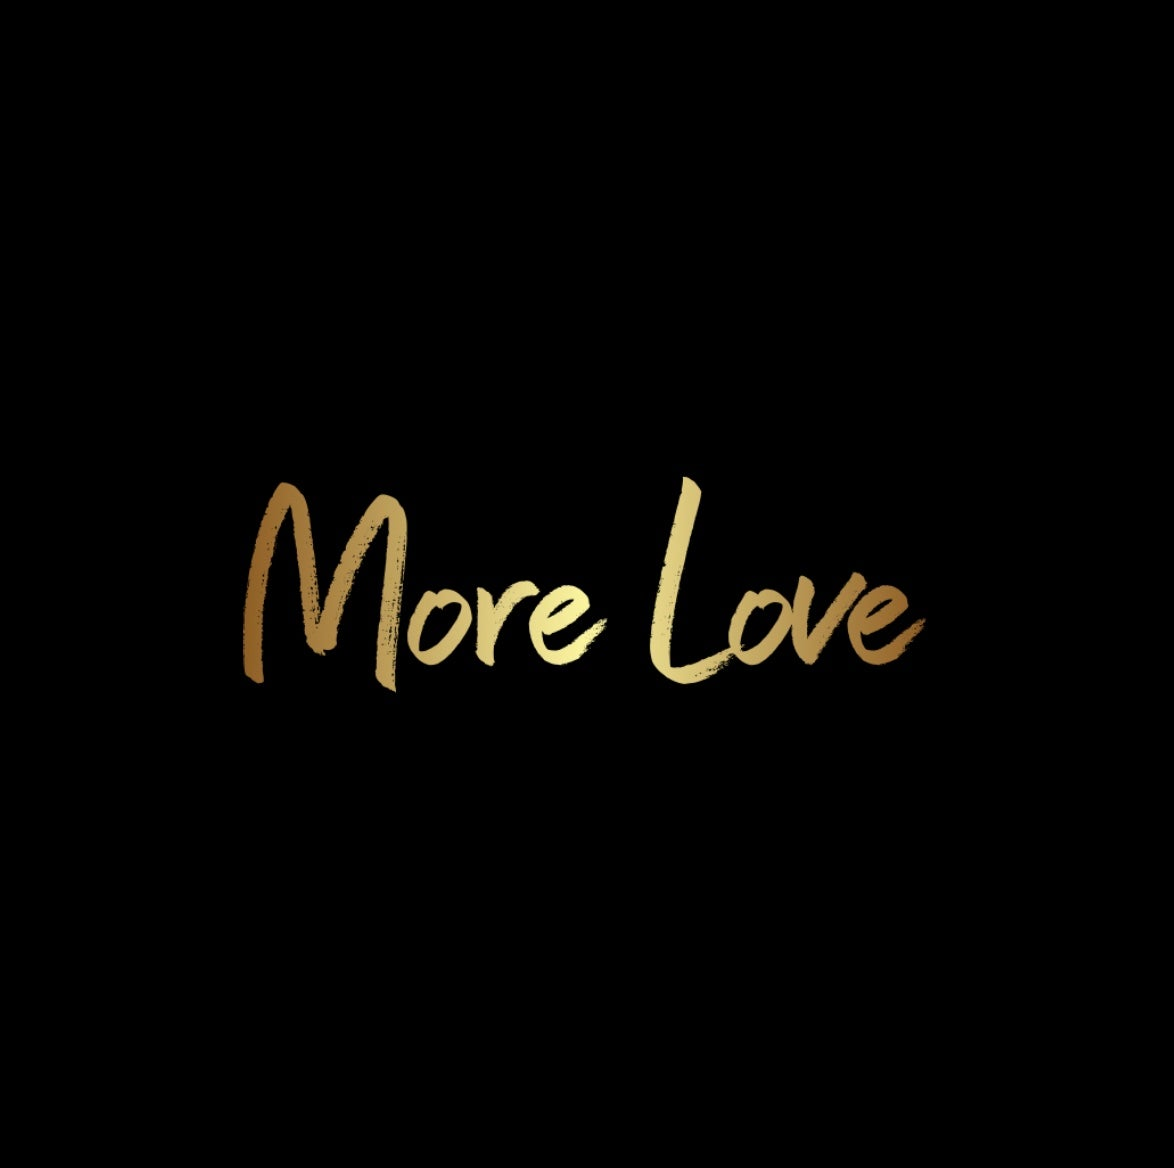 Image of 'More Love'